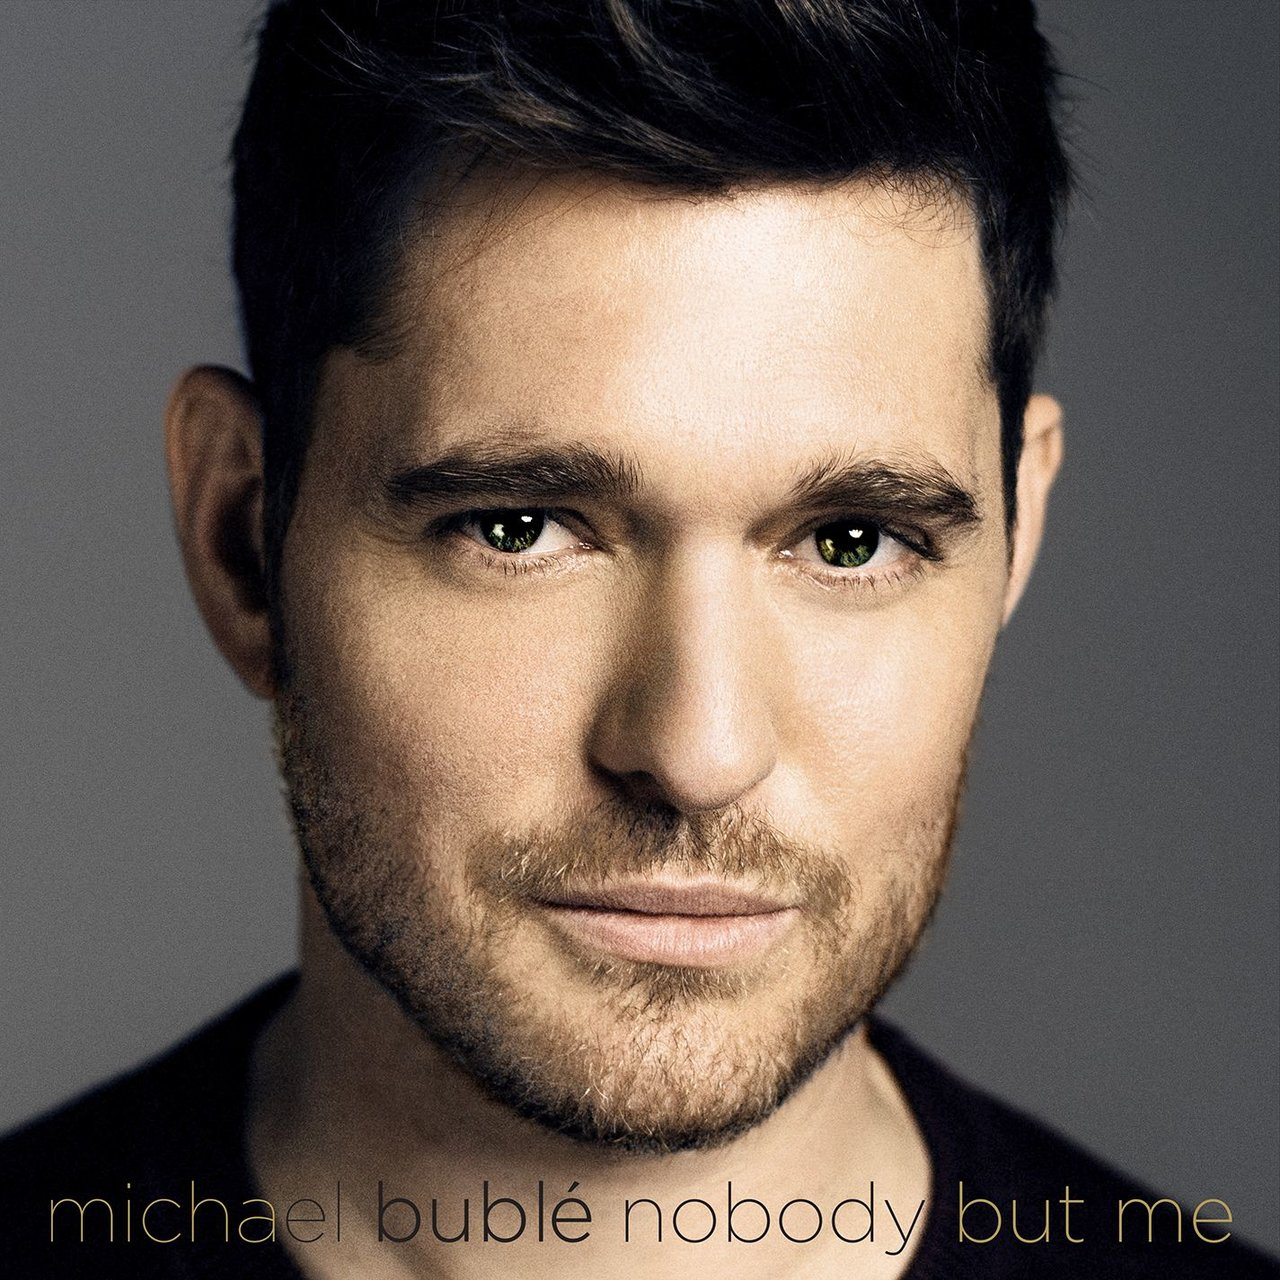 Michael Buble Nobody But Me cover